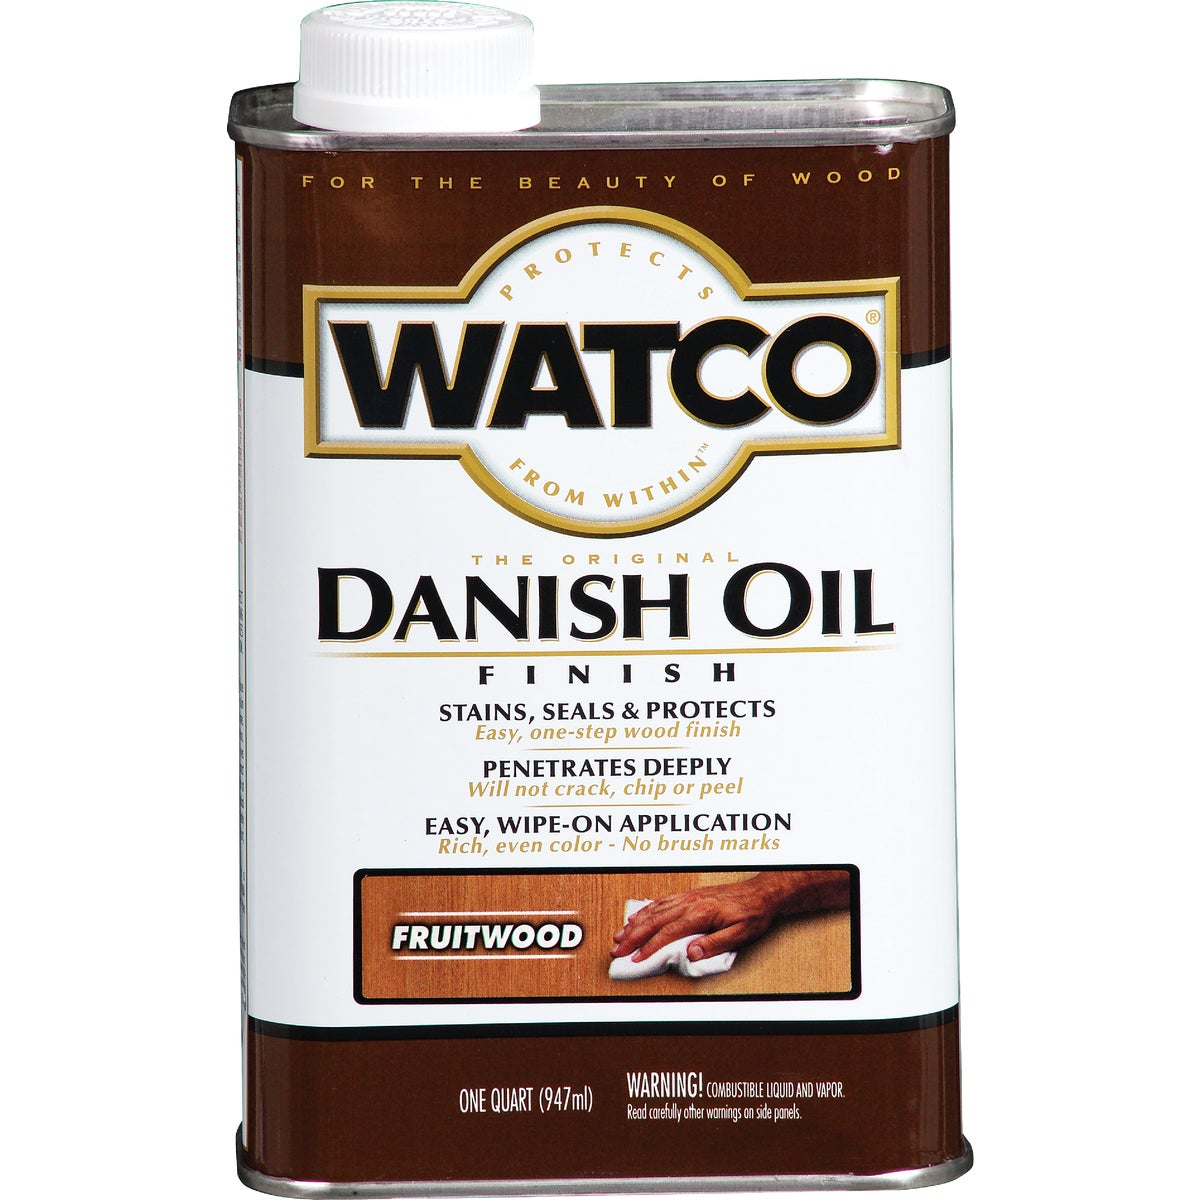 FRUITWOOD DANISH OIL - 65441 by Rustoleum